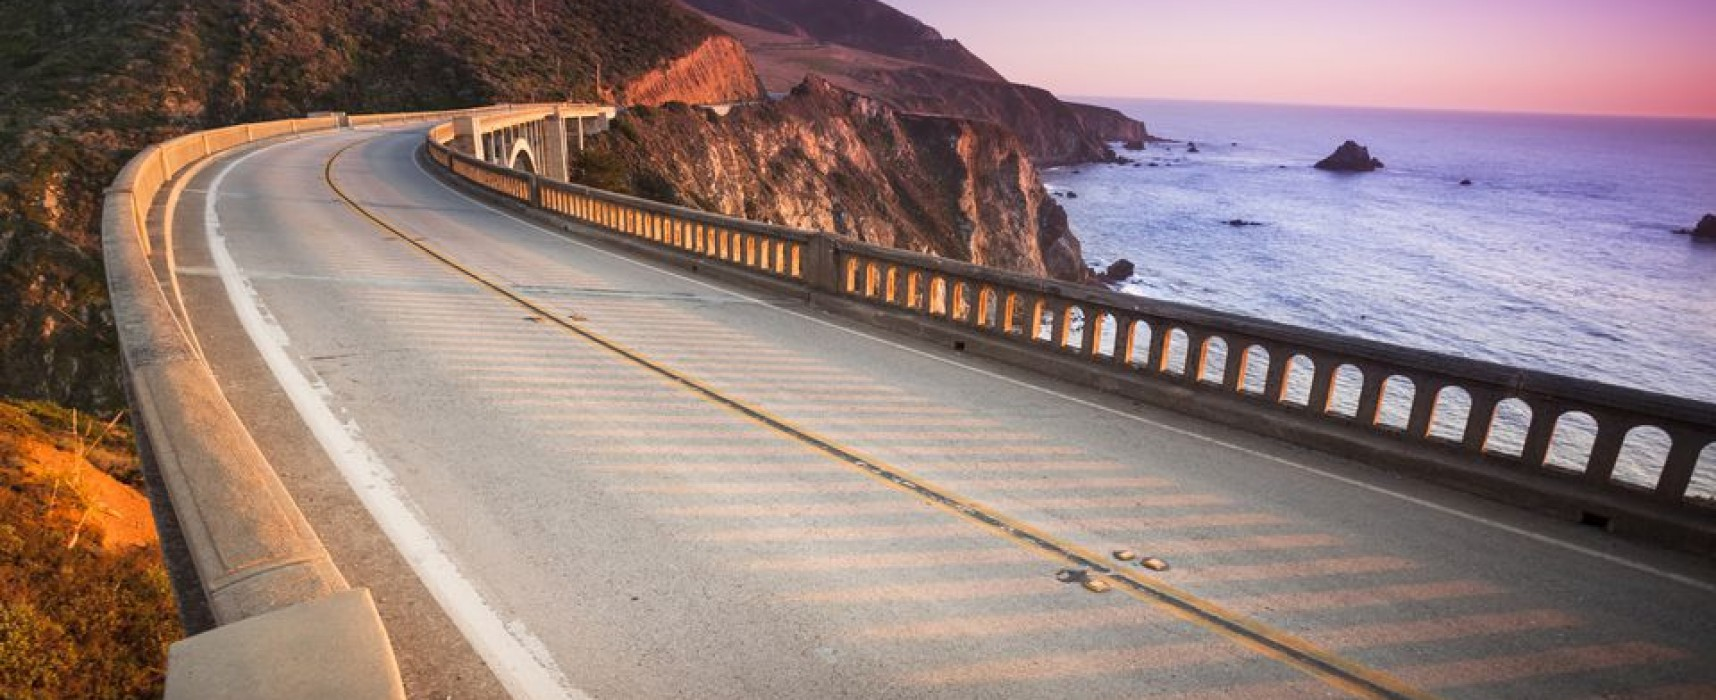 Is California in Your Vacation Plans?